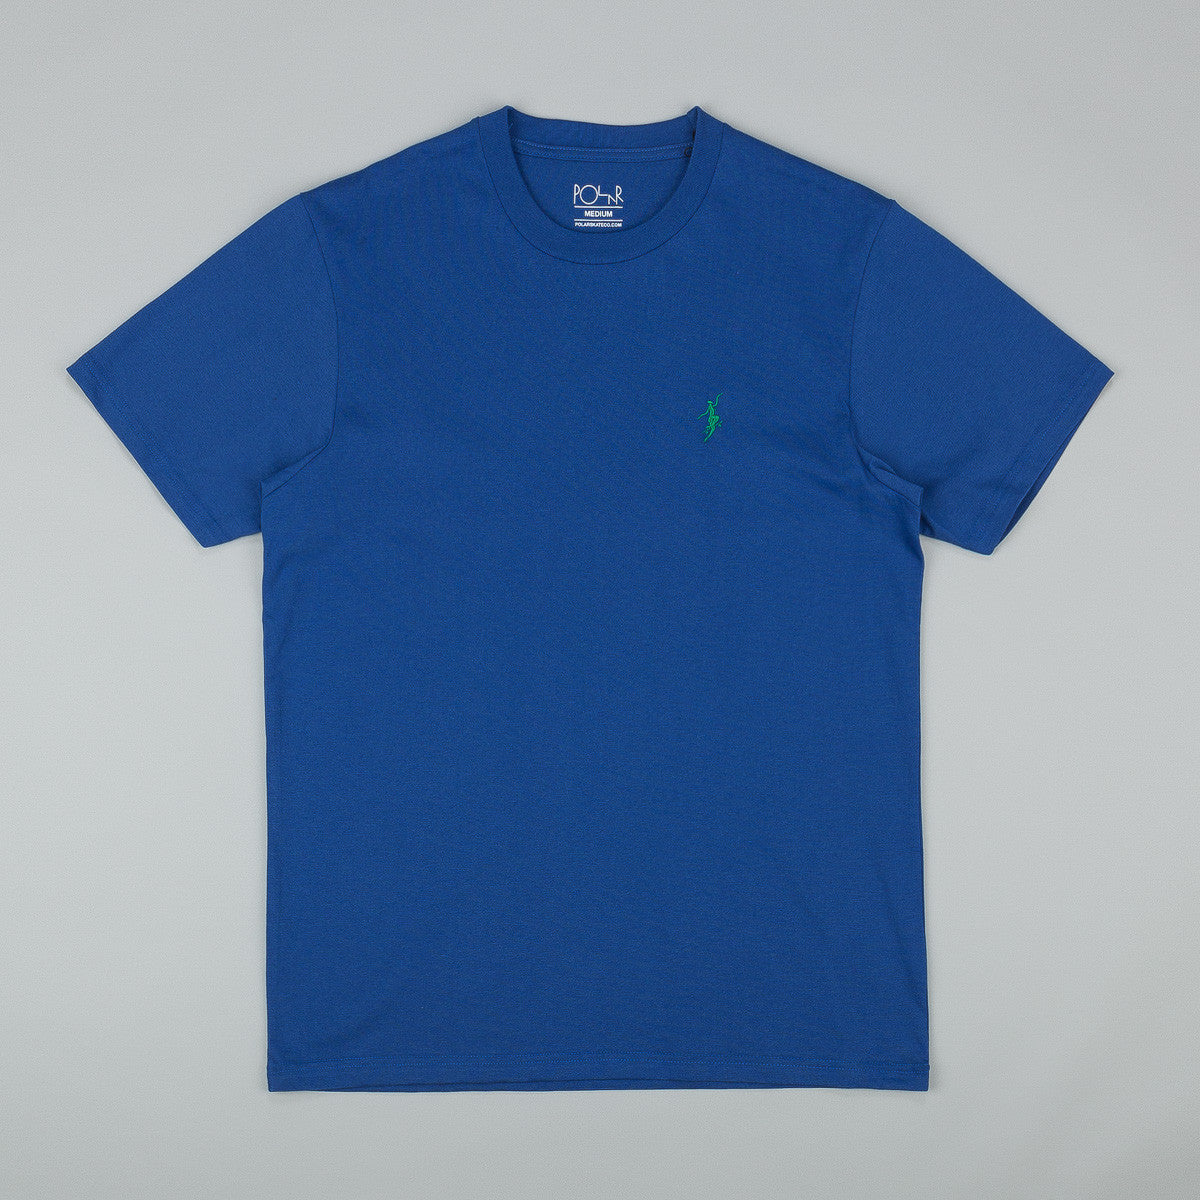 Polar No Comply T-Shirt - Klein Blue / White